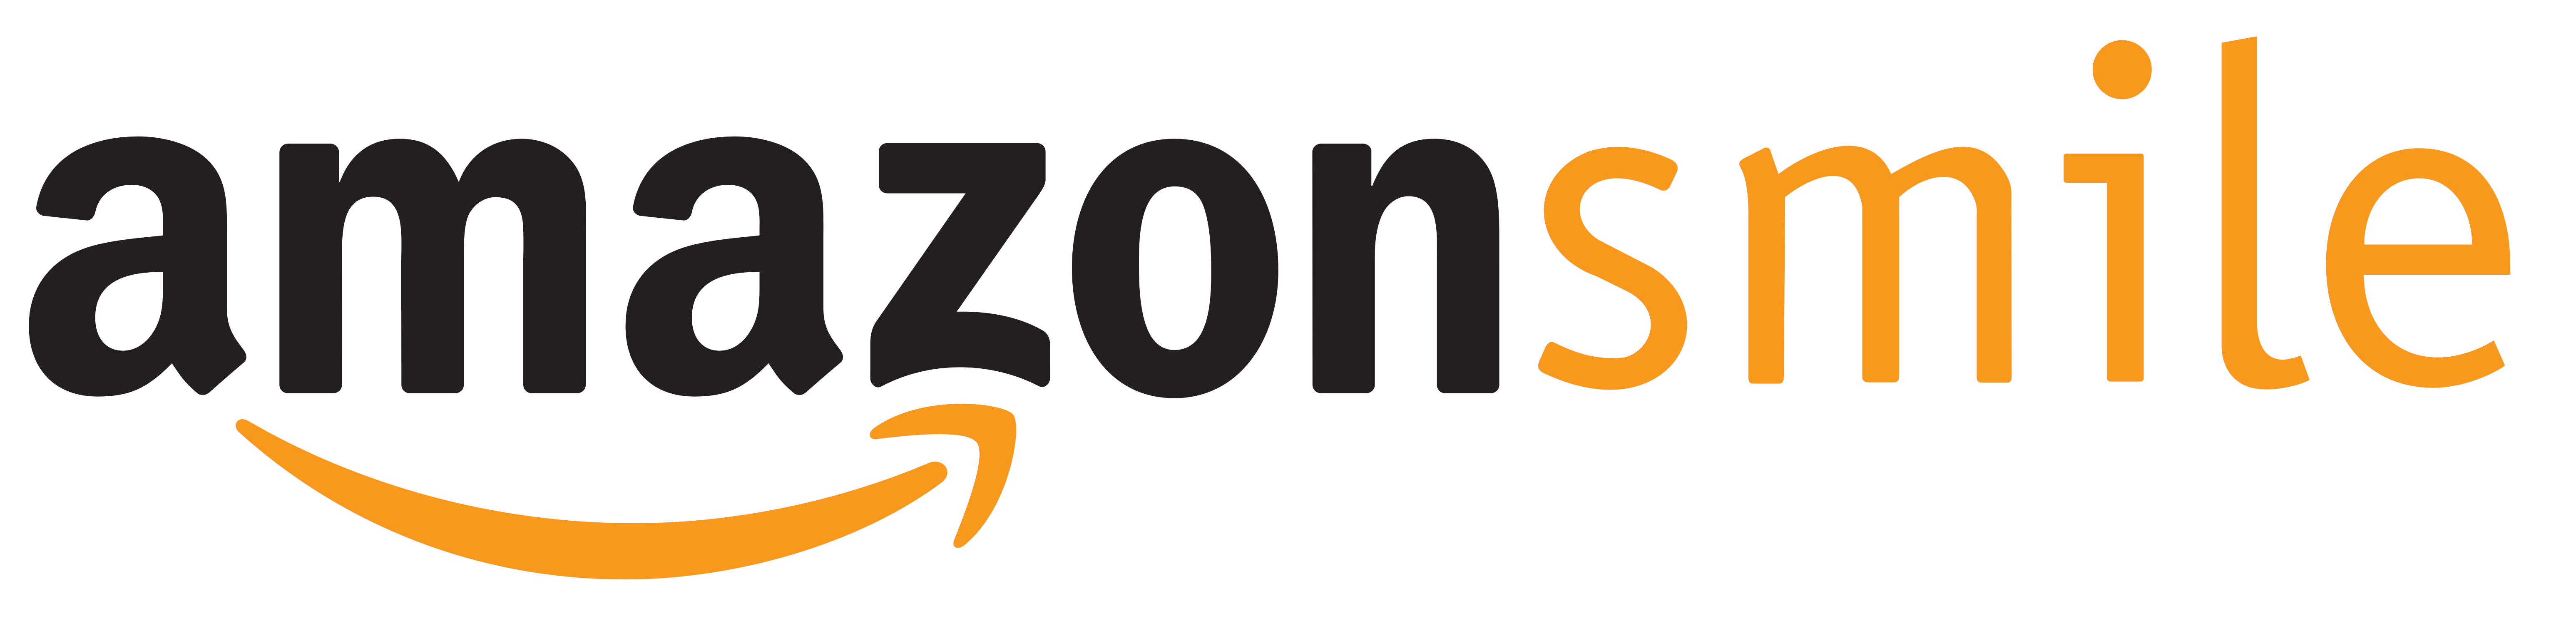 Support the community foundation when you shop on Amazon Smile